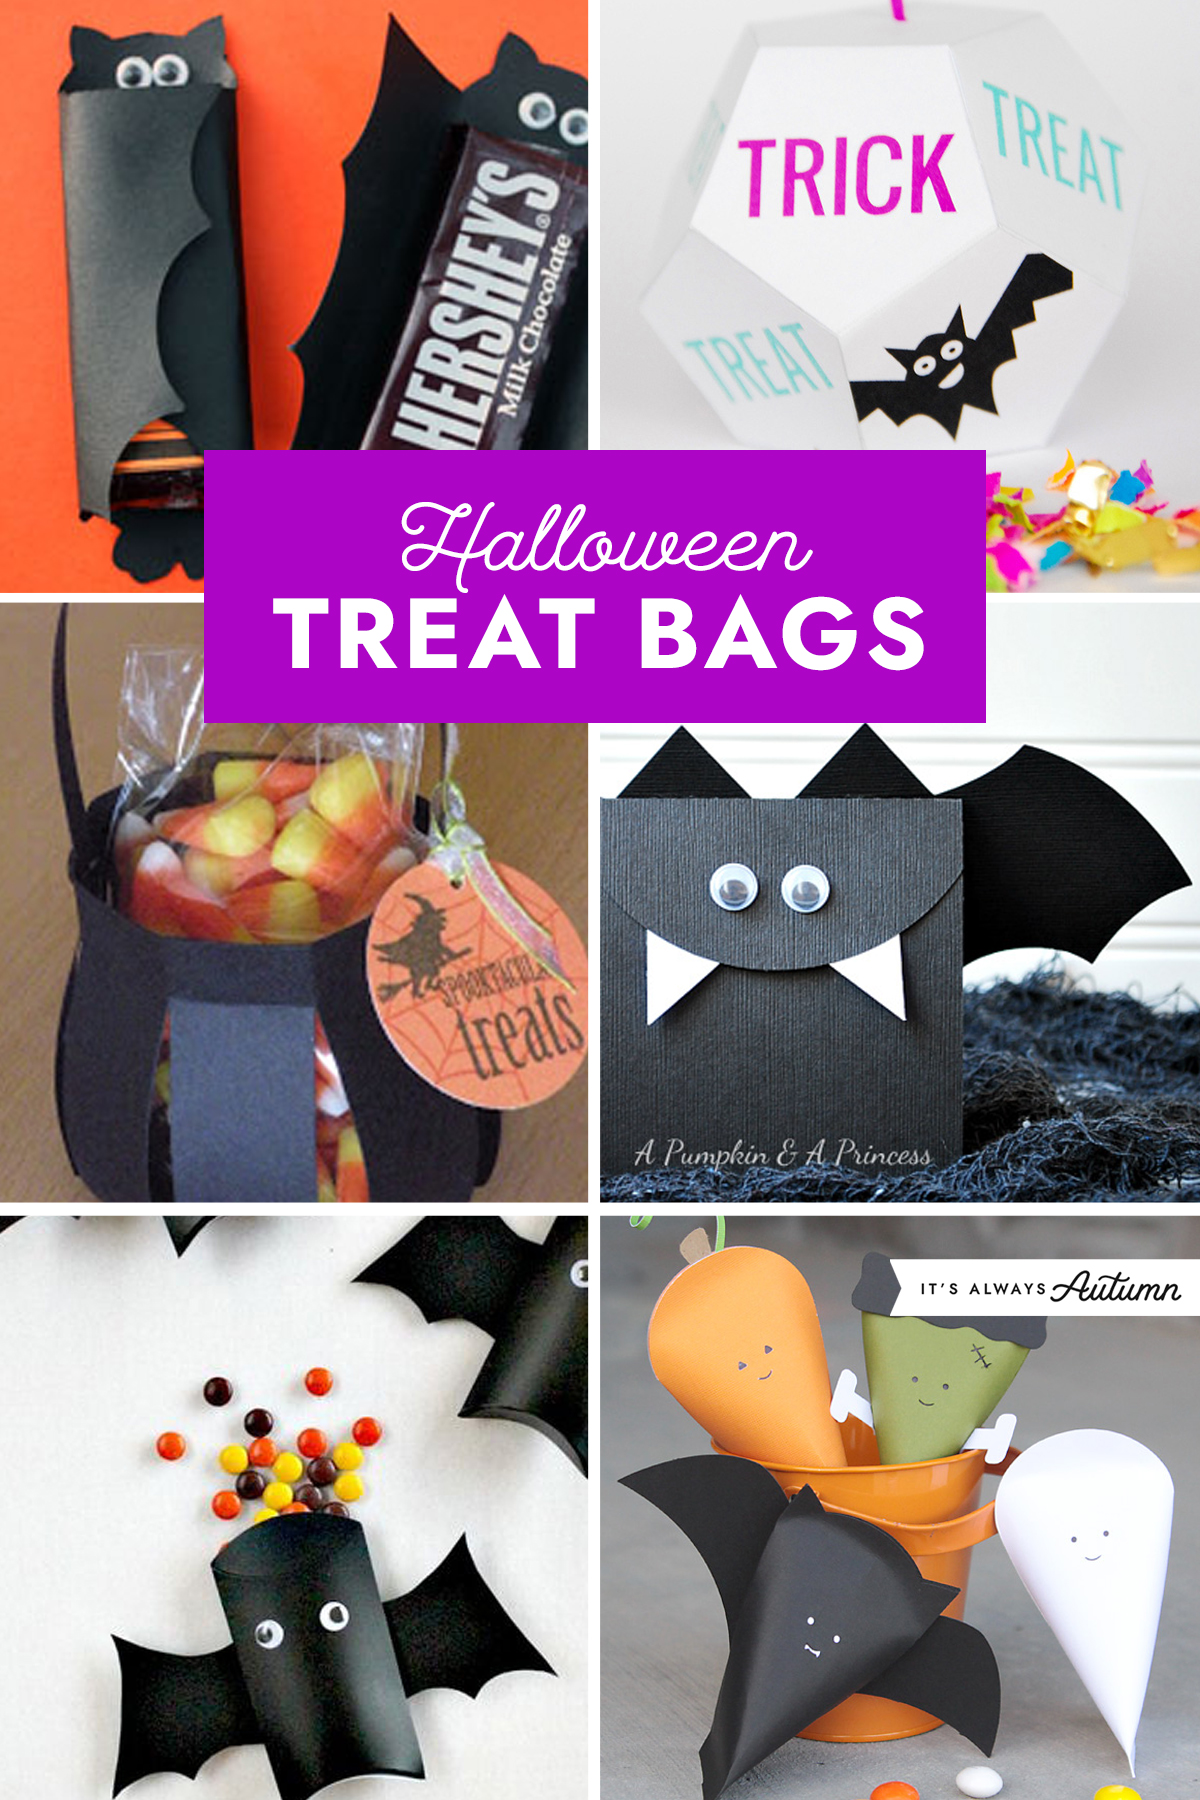 Halloween treat bags collage